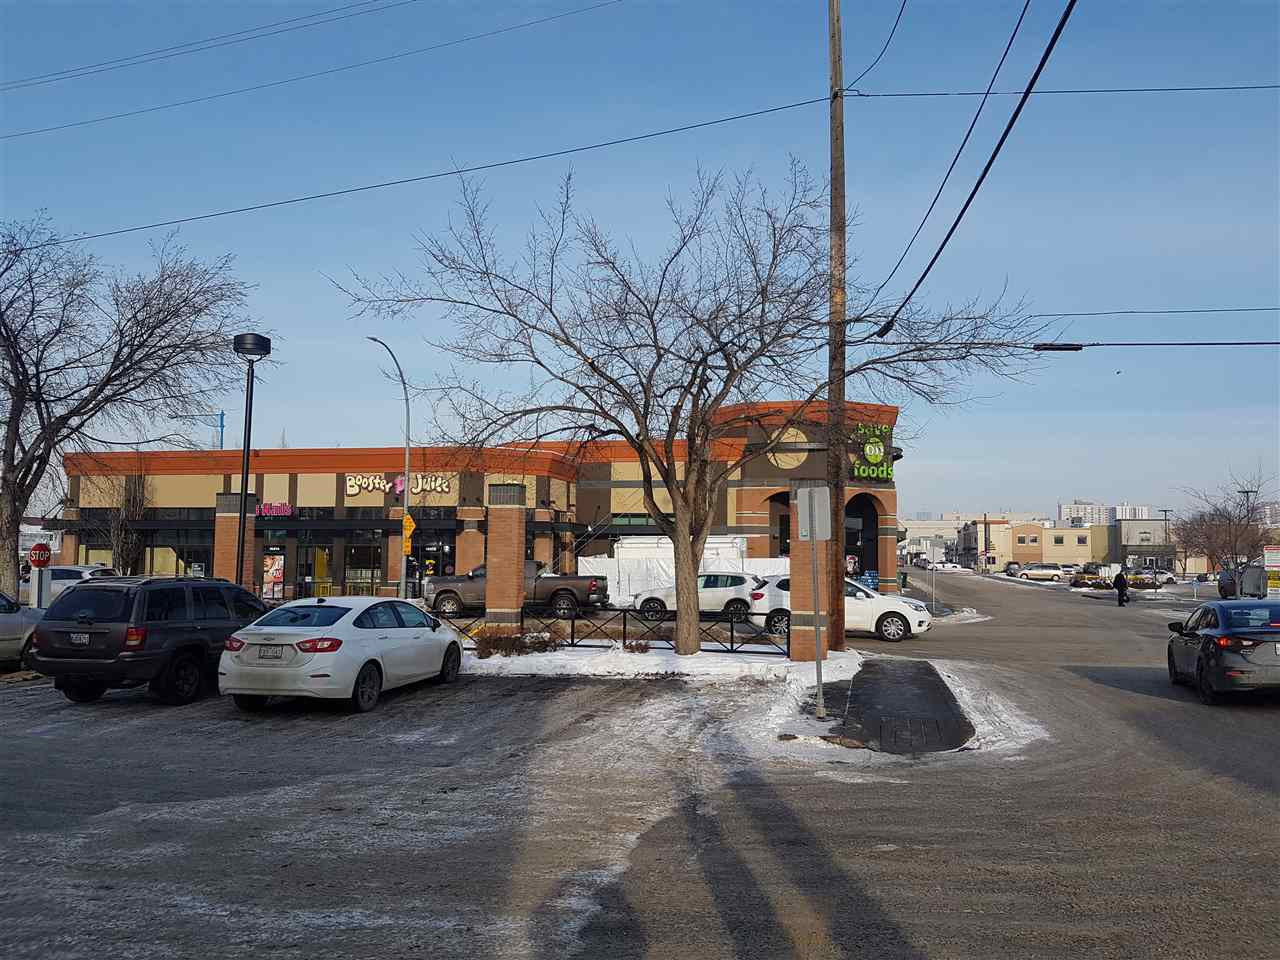 Main Photo: 0 N/A in Edmonton: Zone 41 Business for sale : MLS®# E4185680